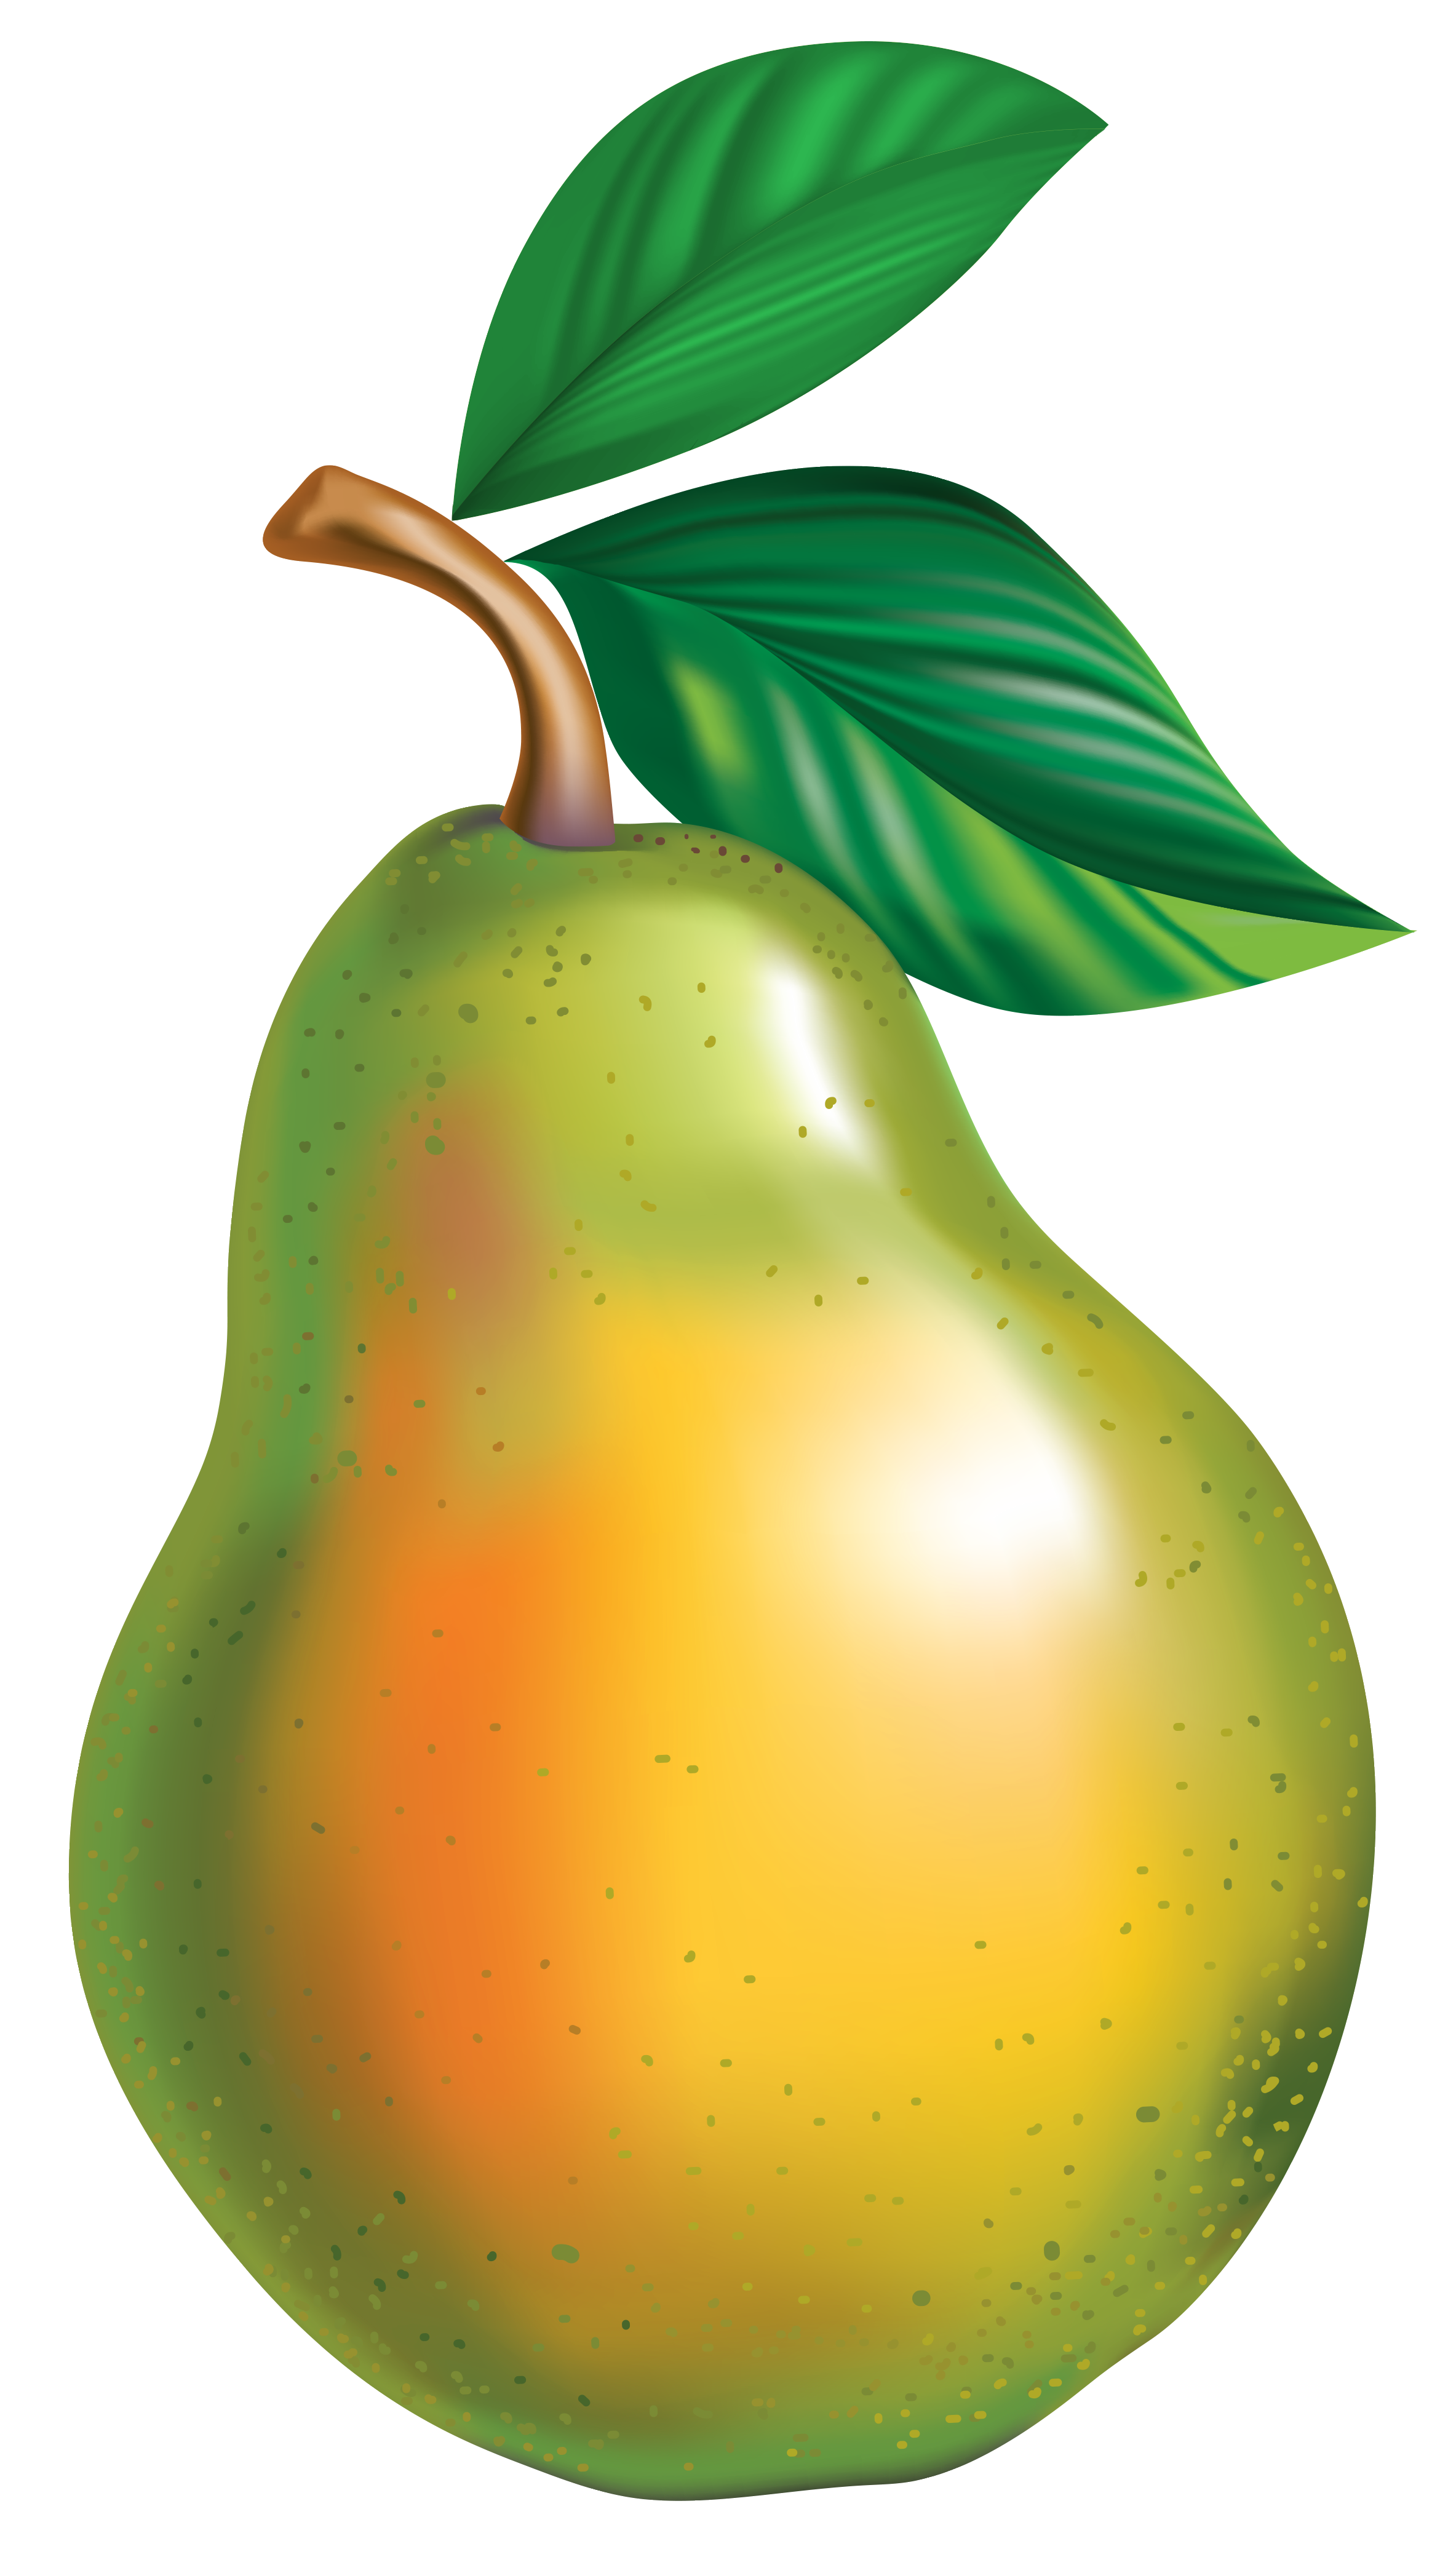 Pear clipart. Png picture gallery yopriceville